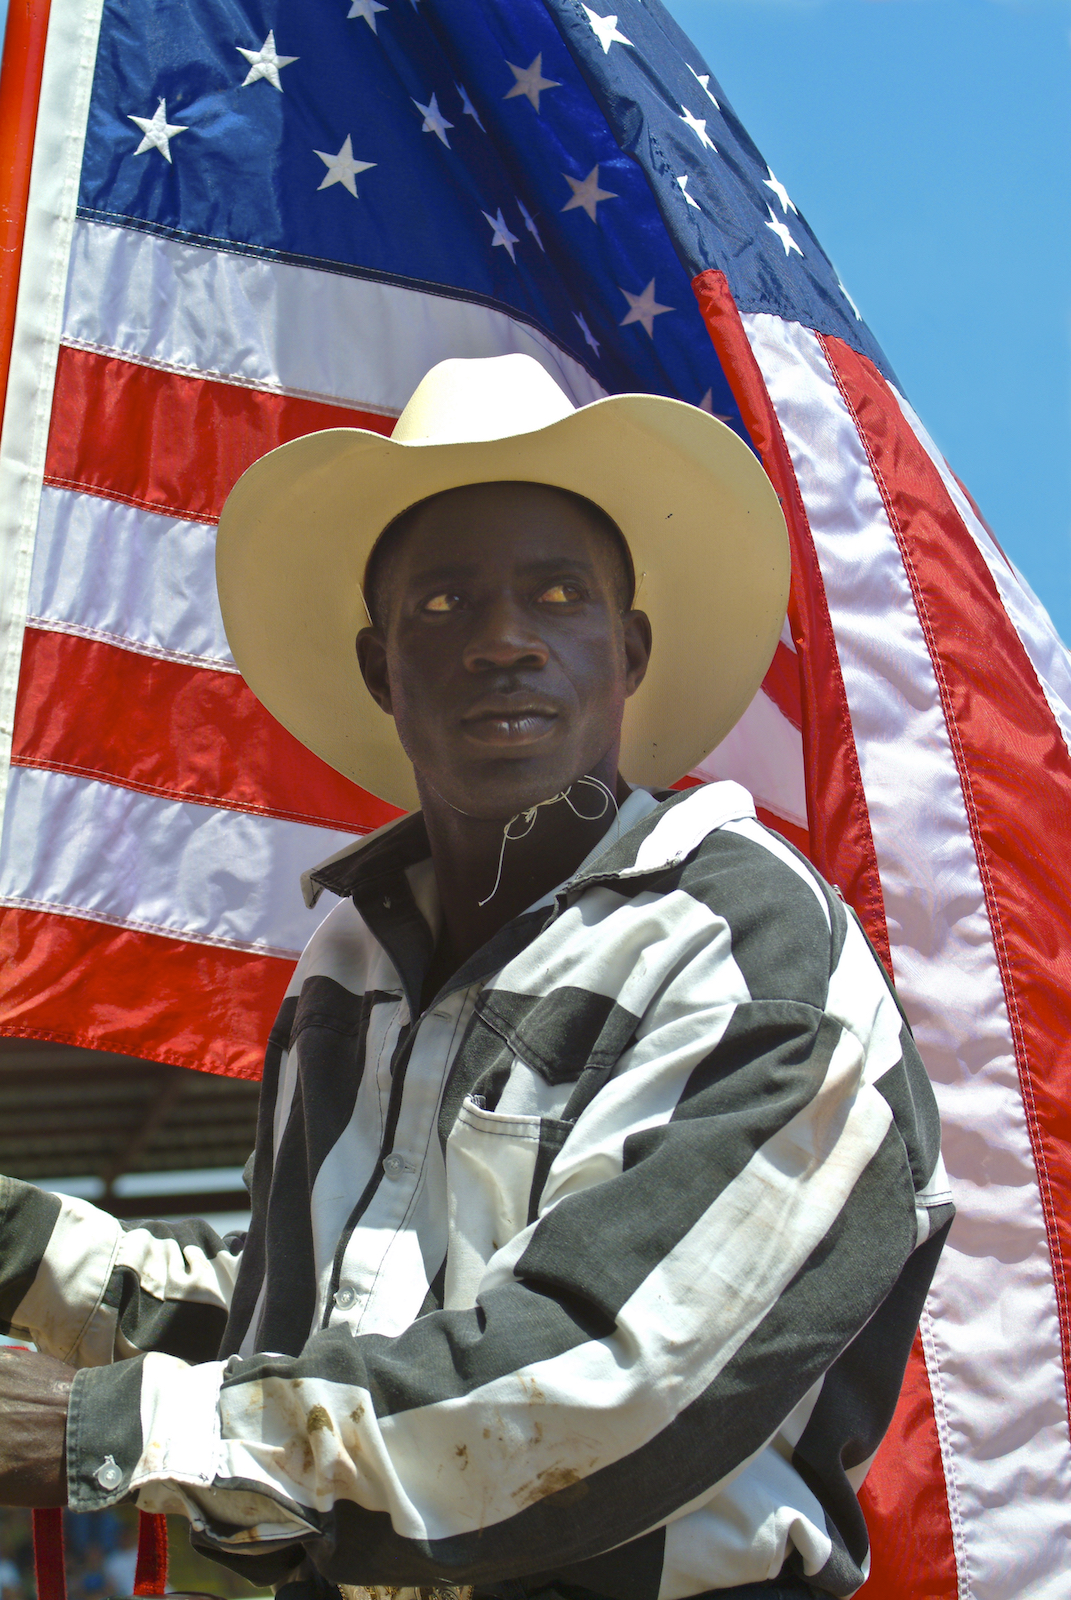 A prisoner poses in front of the American flag at the Angola Prison Rodeo in Louisiana.  Image by New Orleans based travel photographer, Marc Pagani - marcpagani.com